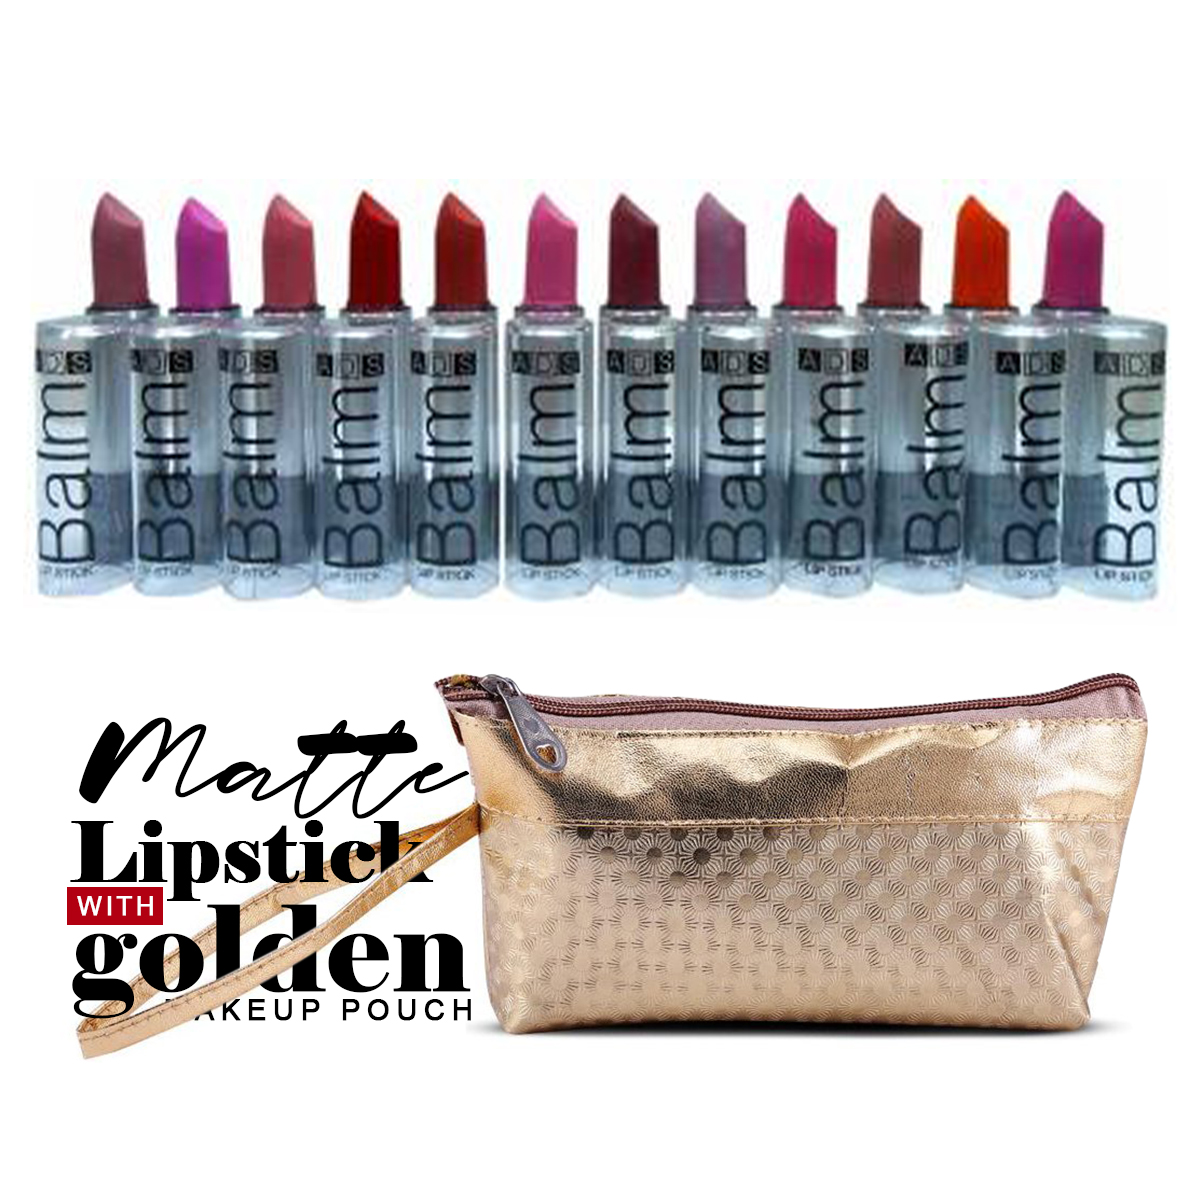 ADS Matte Lipstick Balm Mutlicolor Pack of 12 with Golden Makeup Pouch